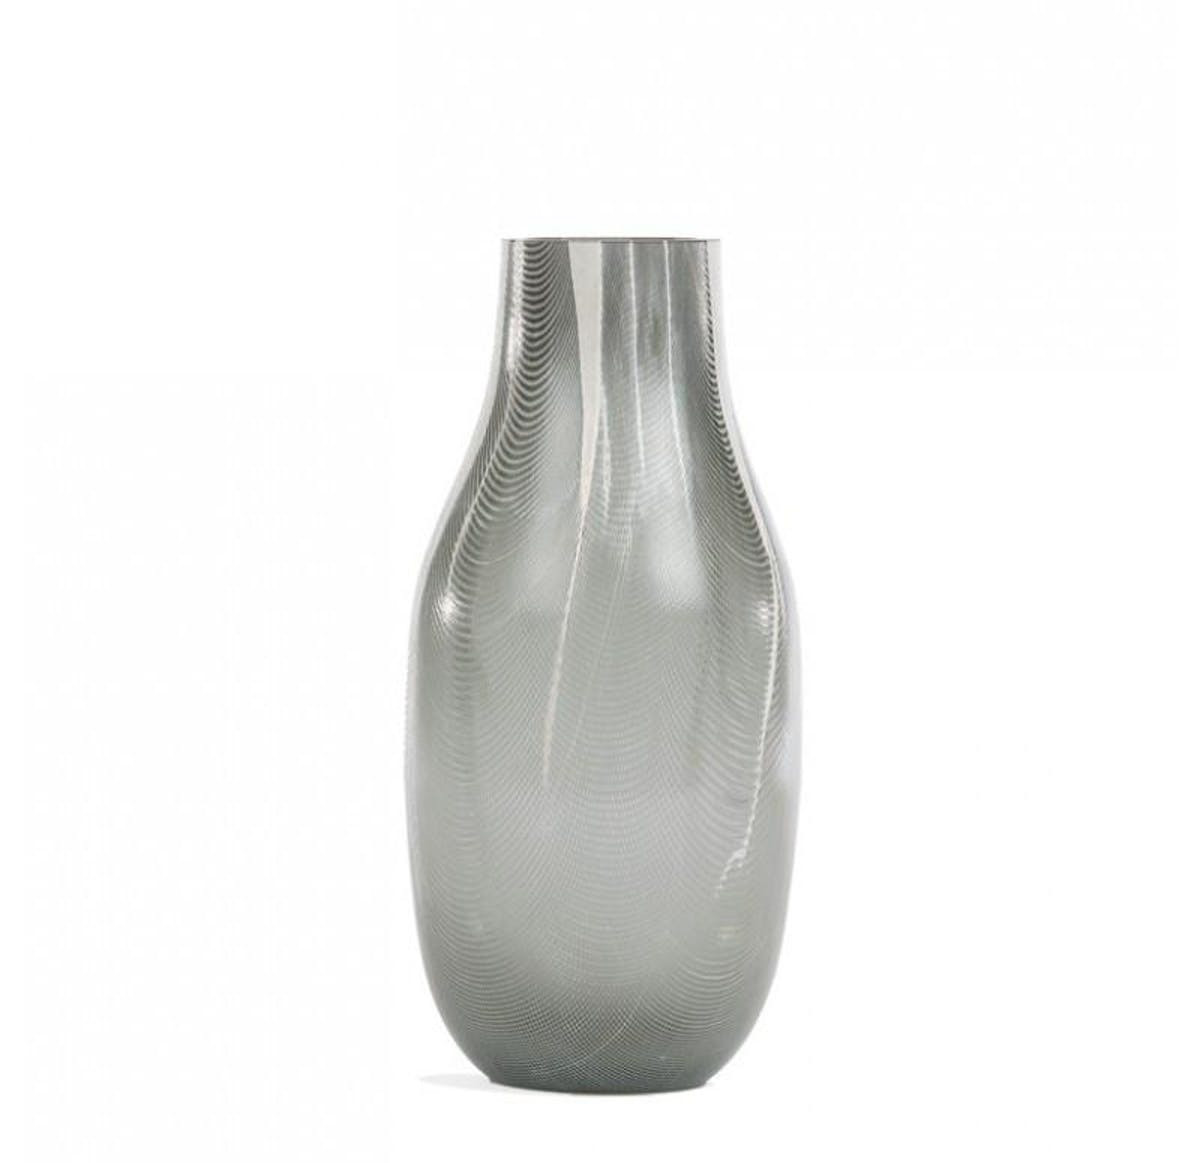 26 Ideal White and Gold Ceramic Vase